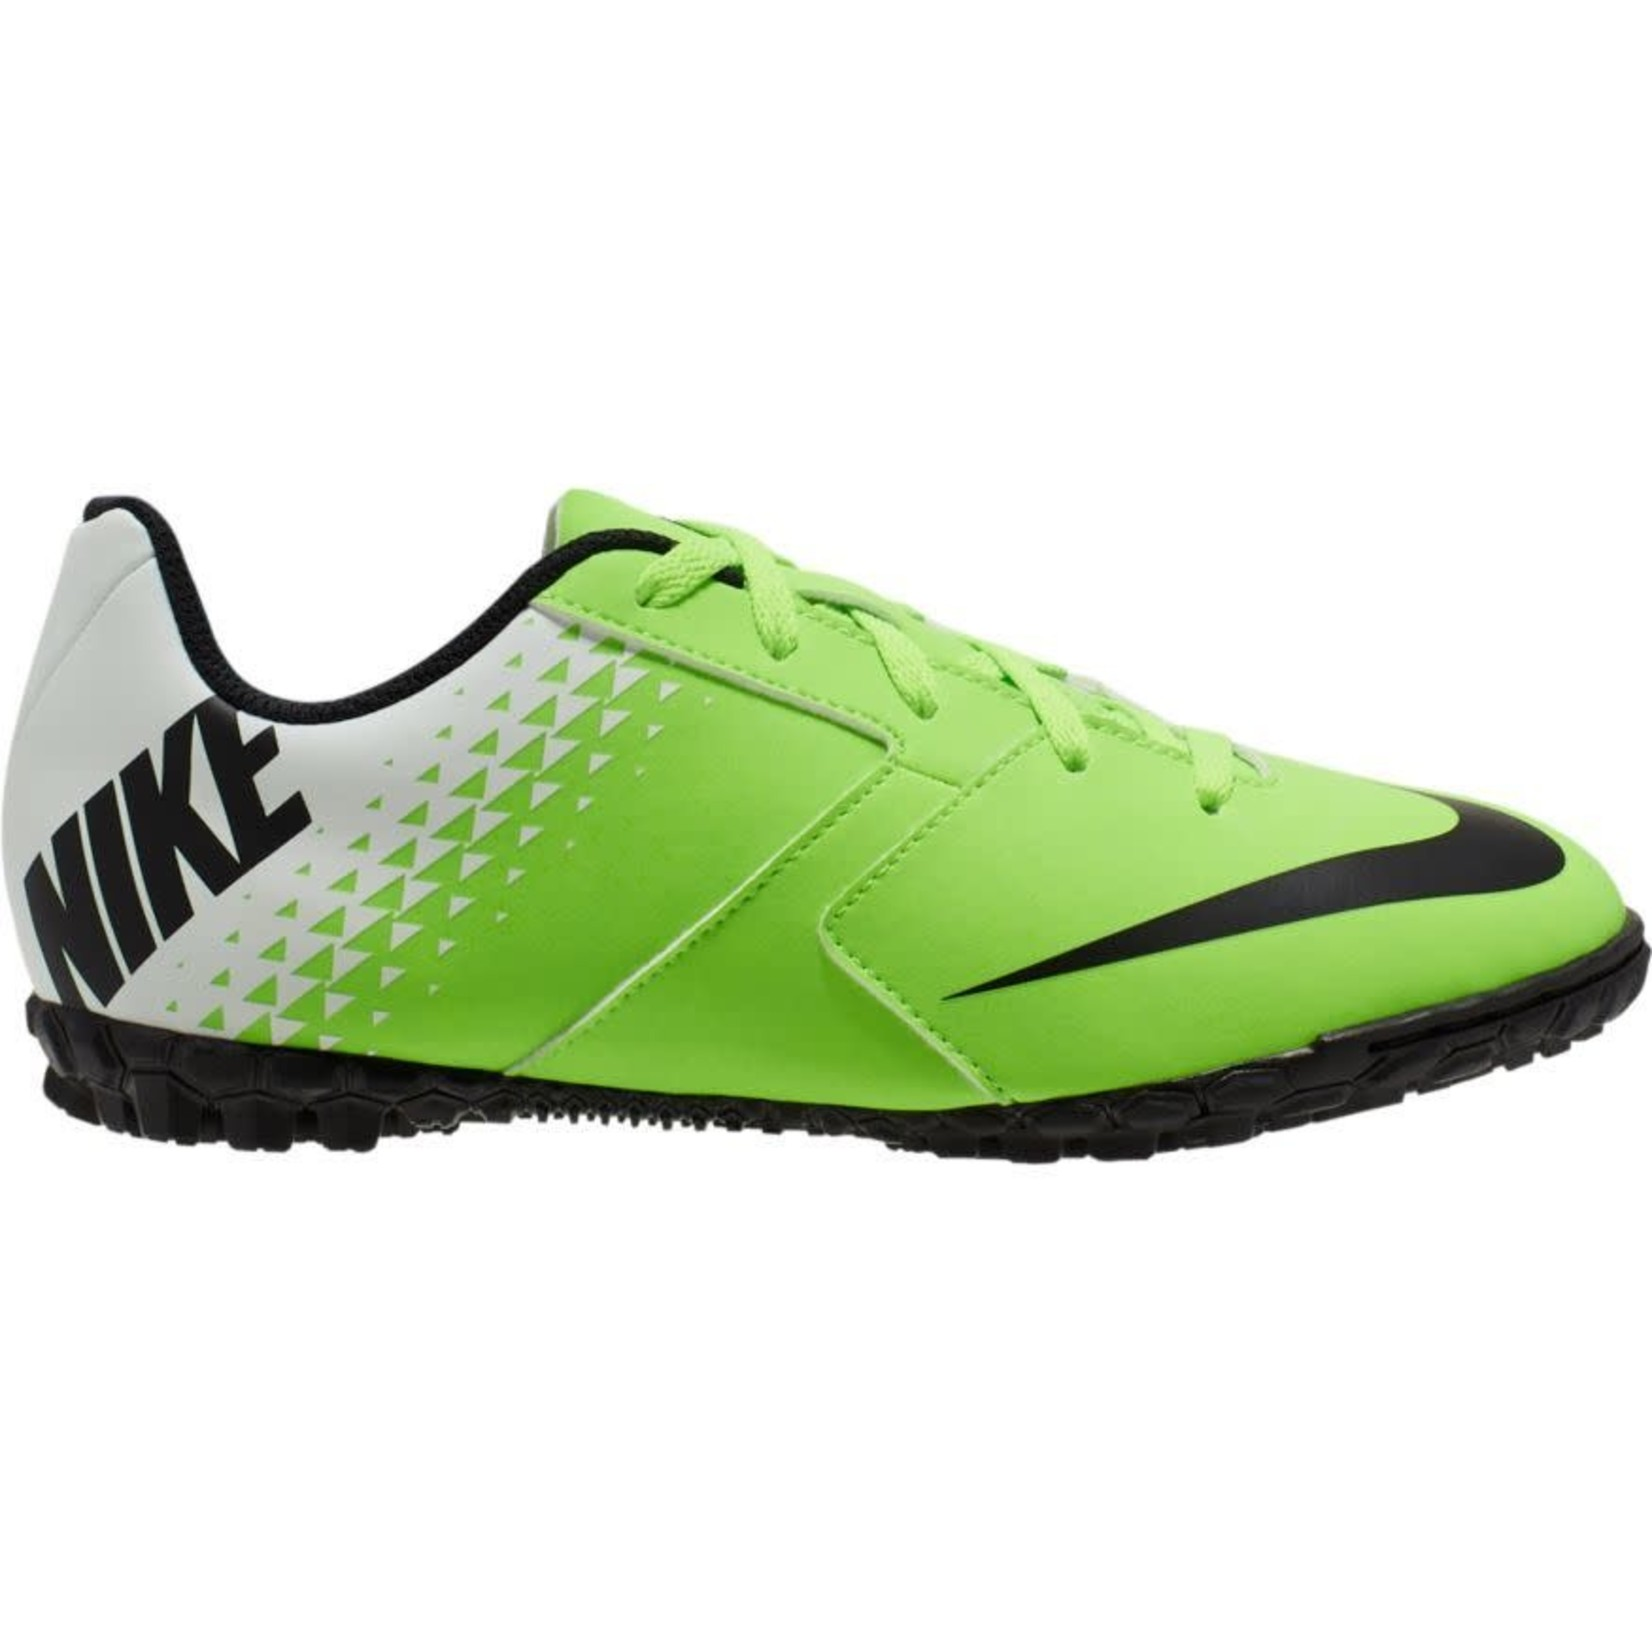 NIKE BOMBAX TF JR (LIME)